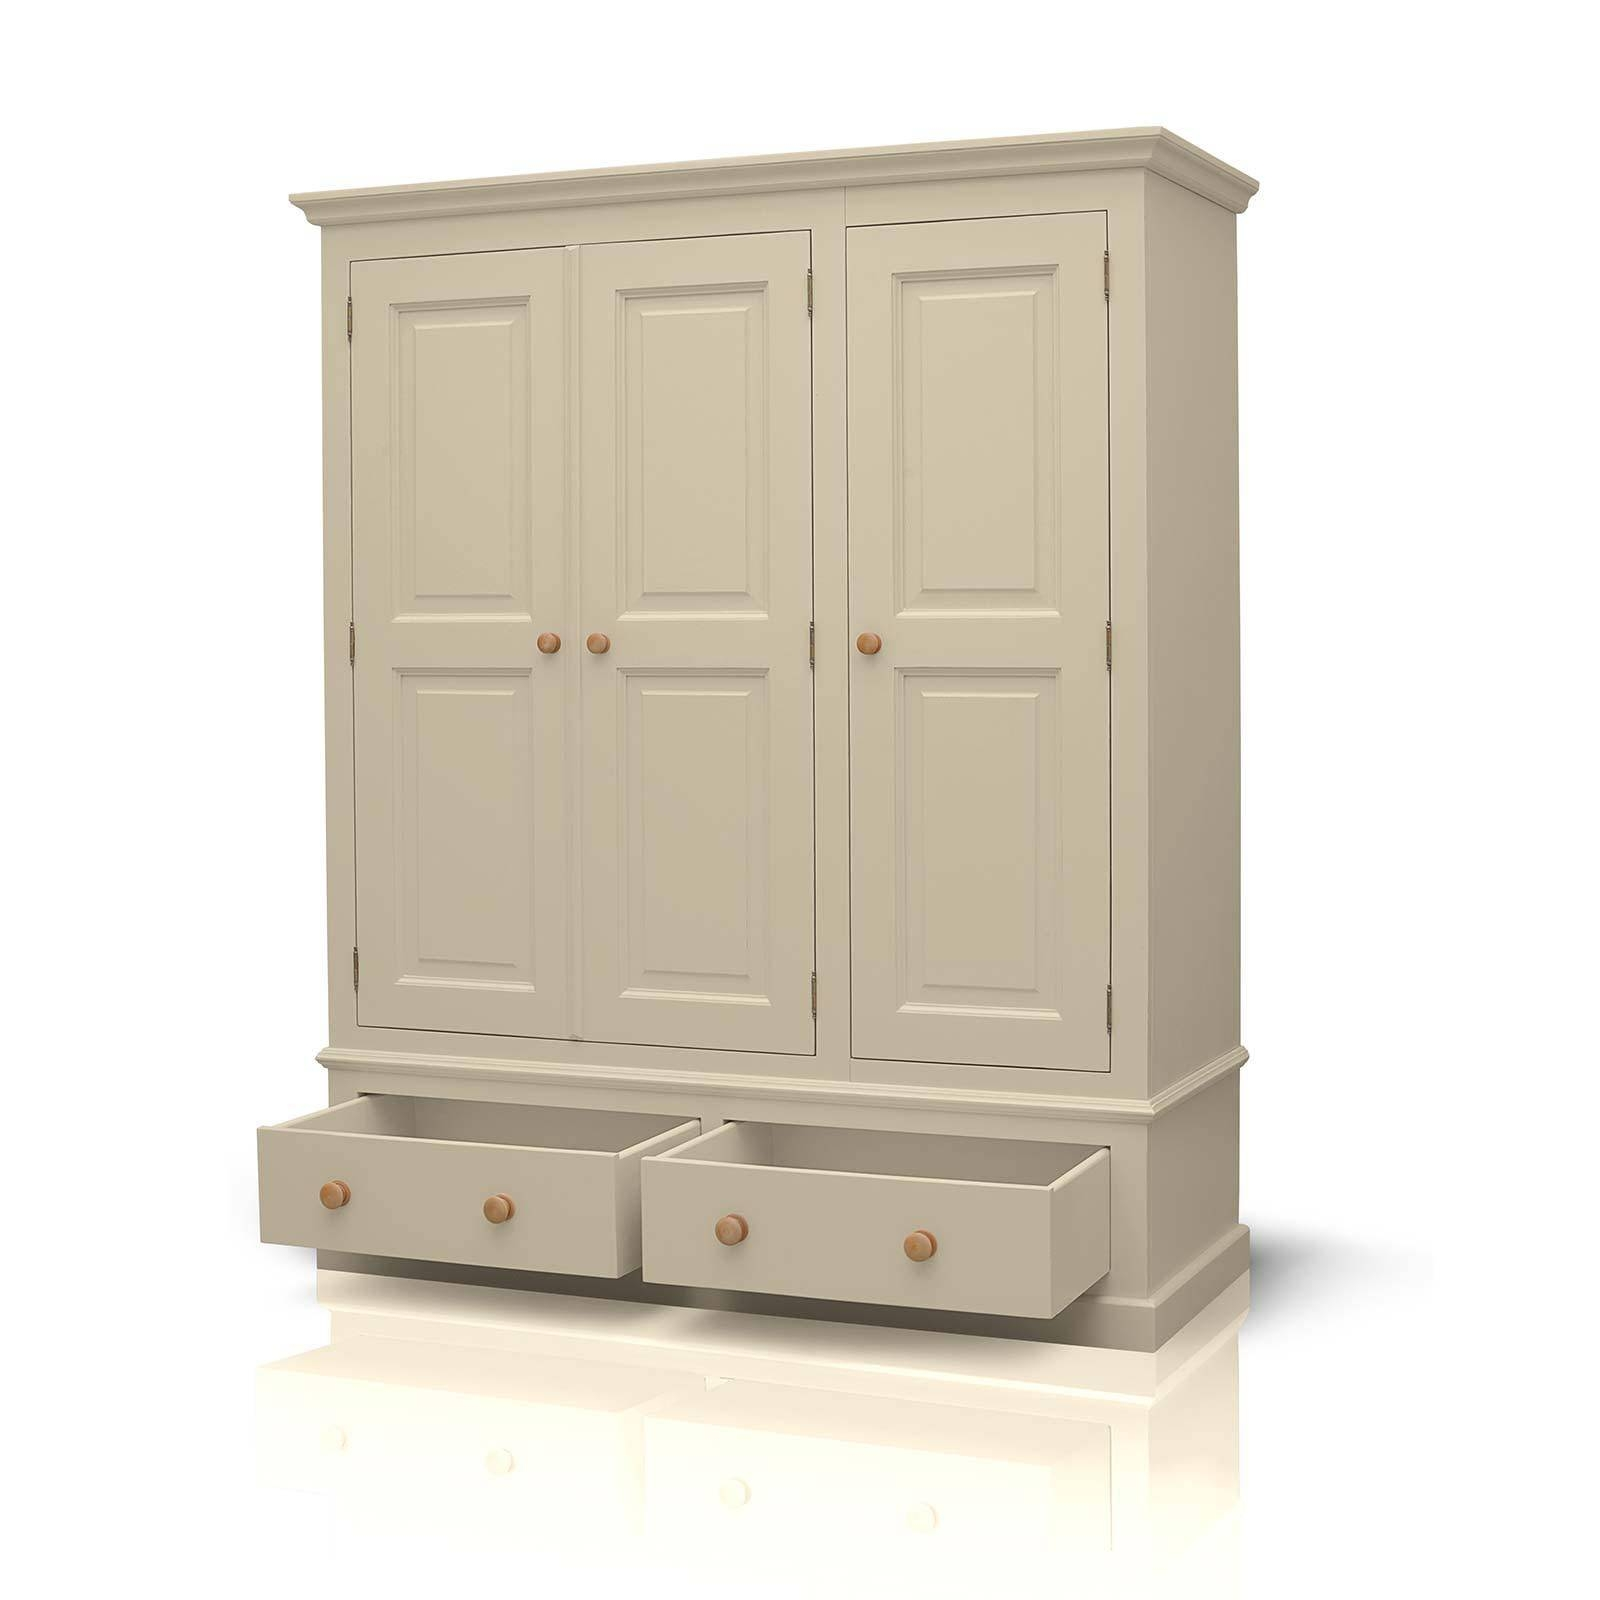 Mottisfont Painted Pine Triple Wardrobe 2 Drawers for Cream Triple Wardrobes (Image 11 of 15)